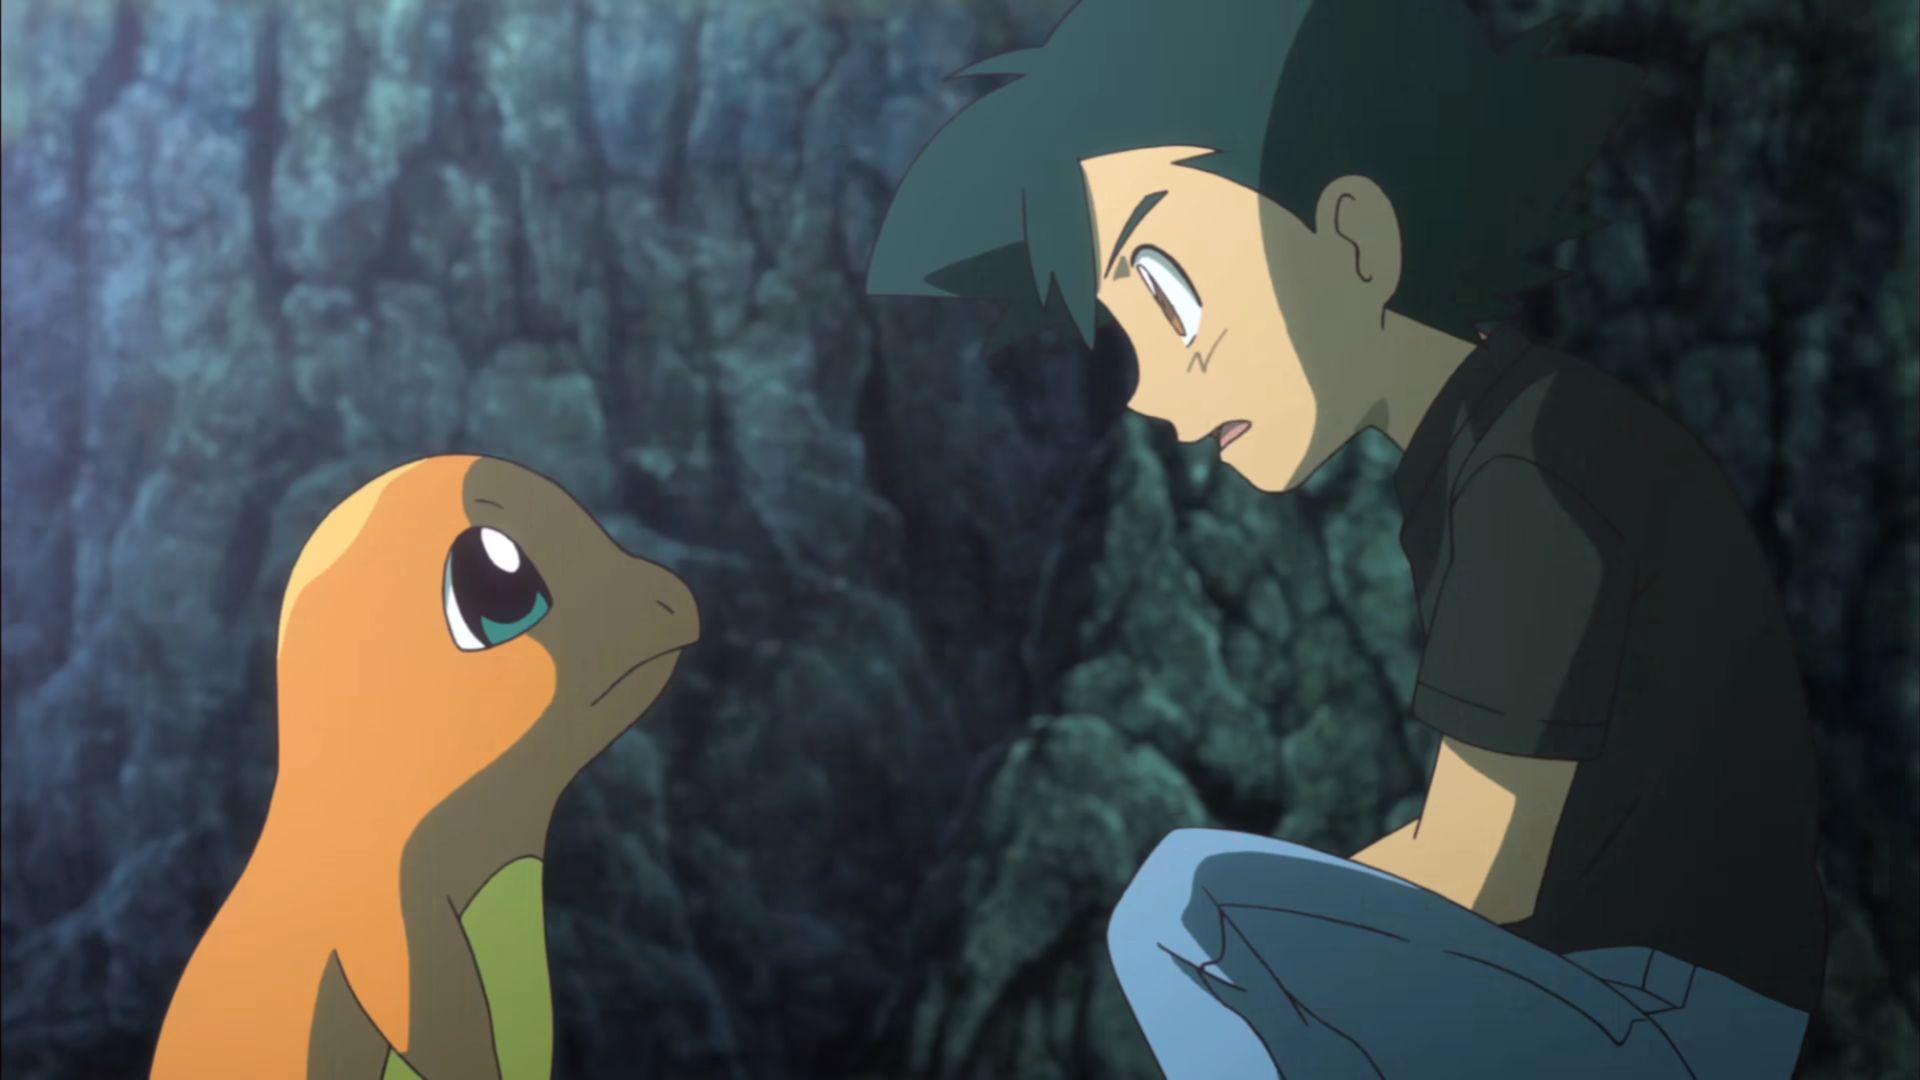 If you're not sold on the new Pokemon movie, the full theatrical trailer will convince you screenshot